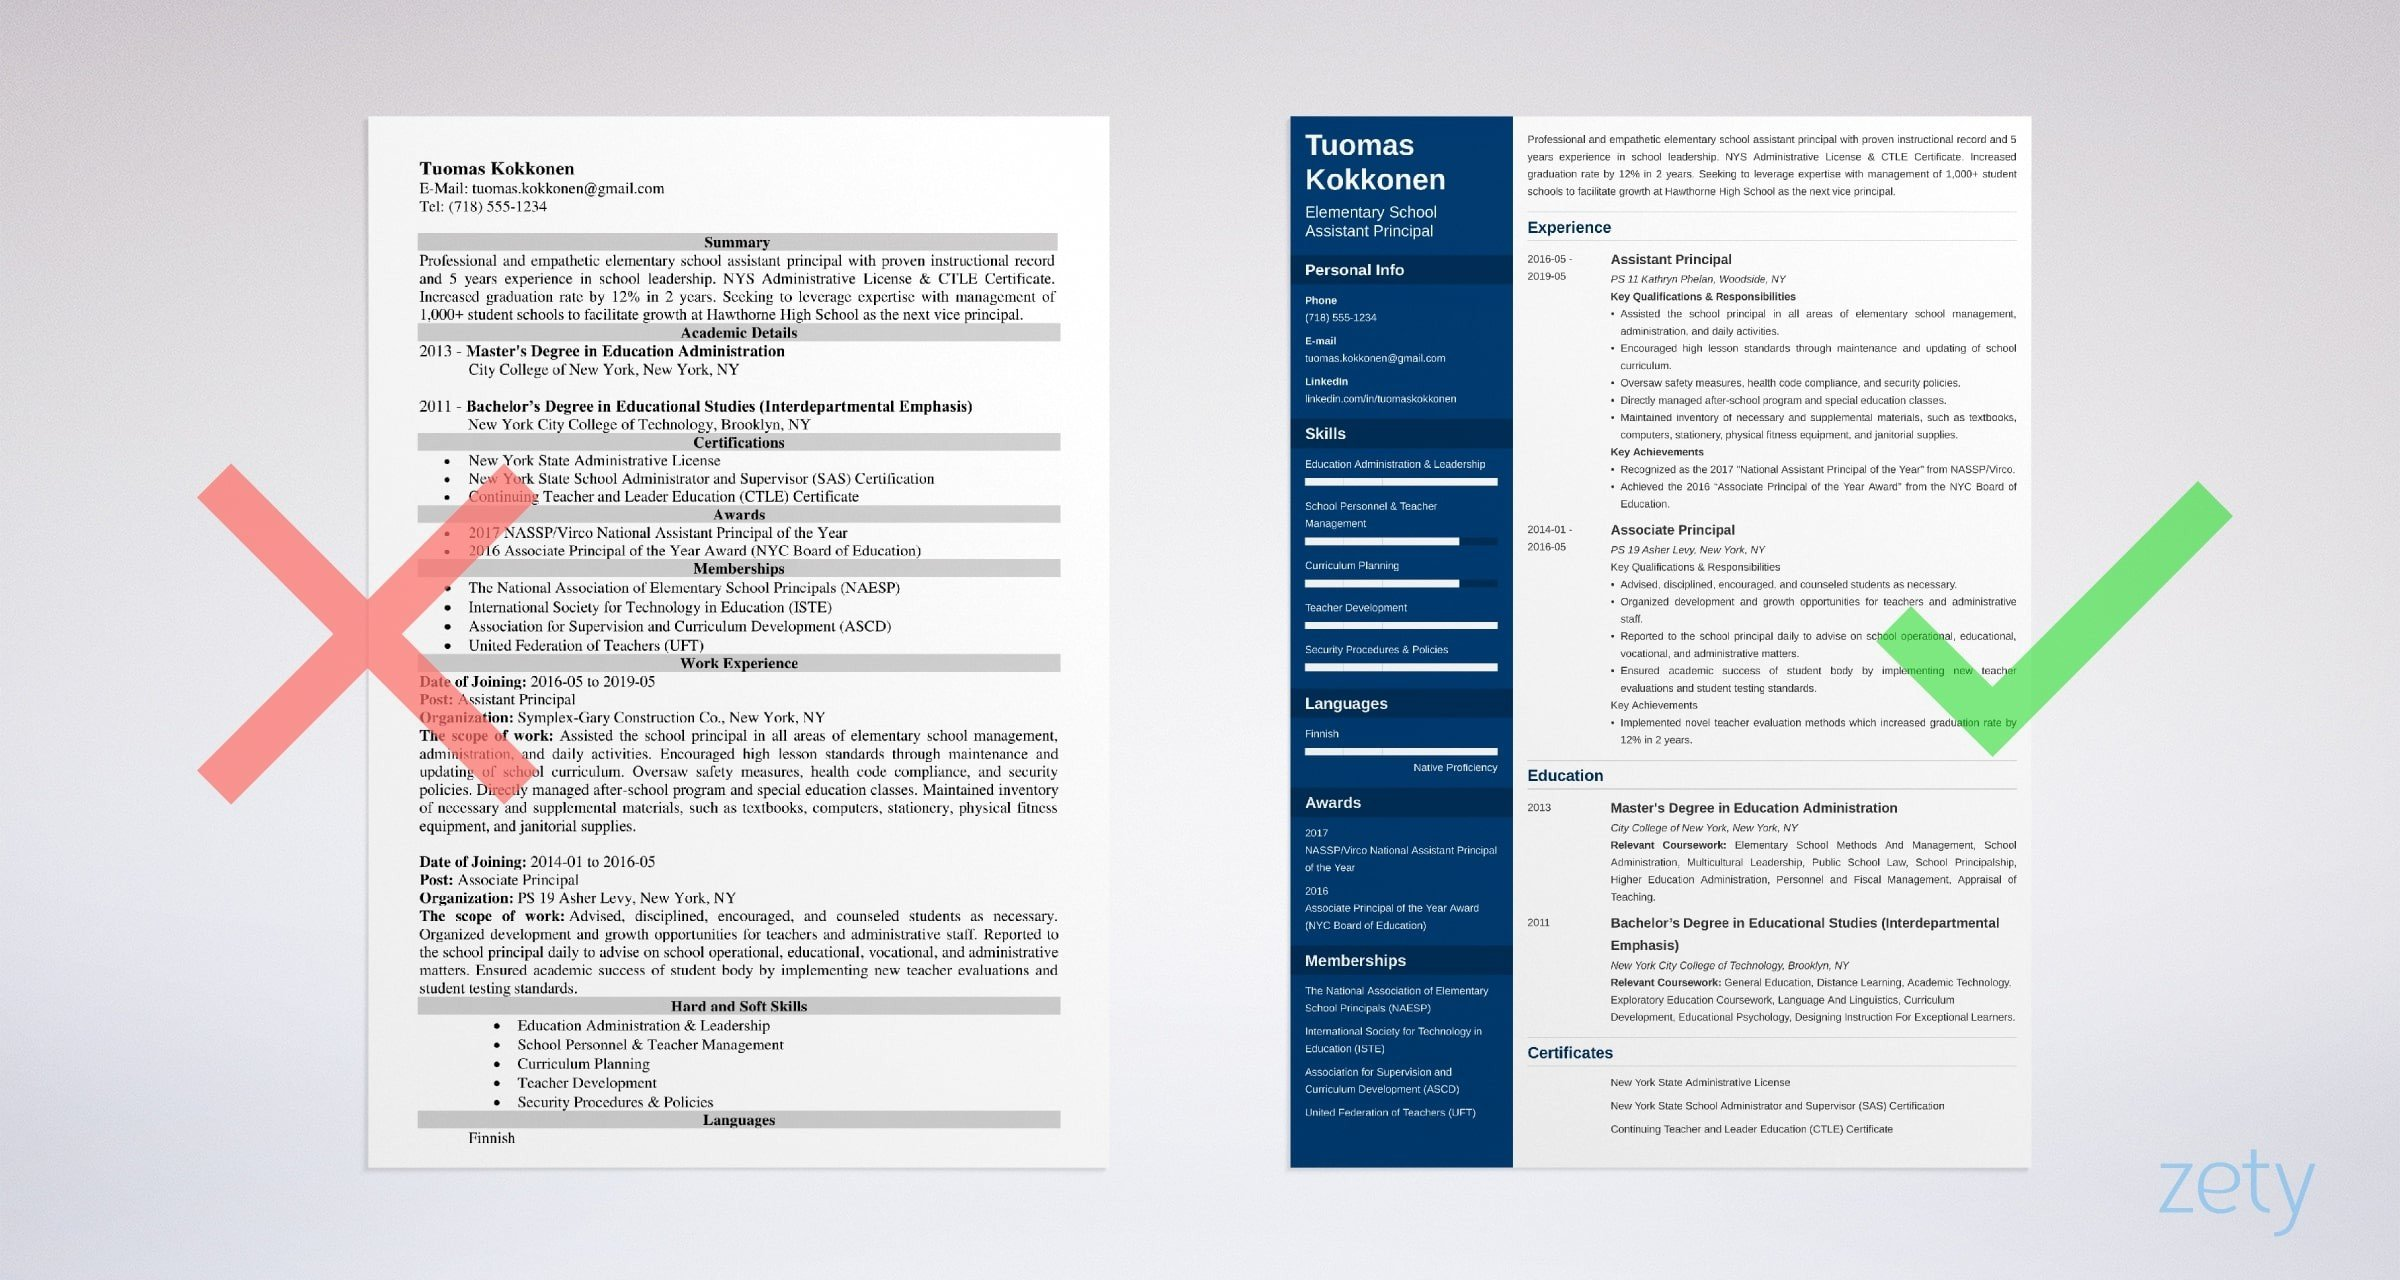 assistant principal resume template guide examples sample for school position example Resume Sample Resume For School Principal Position